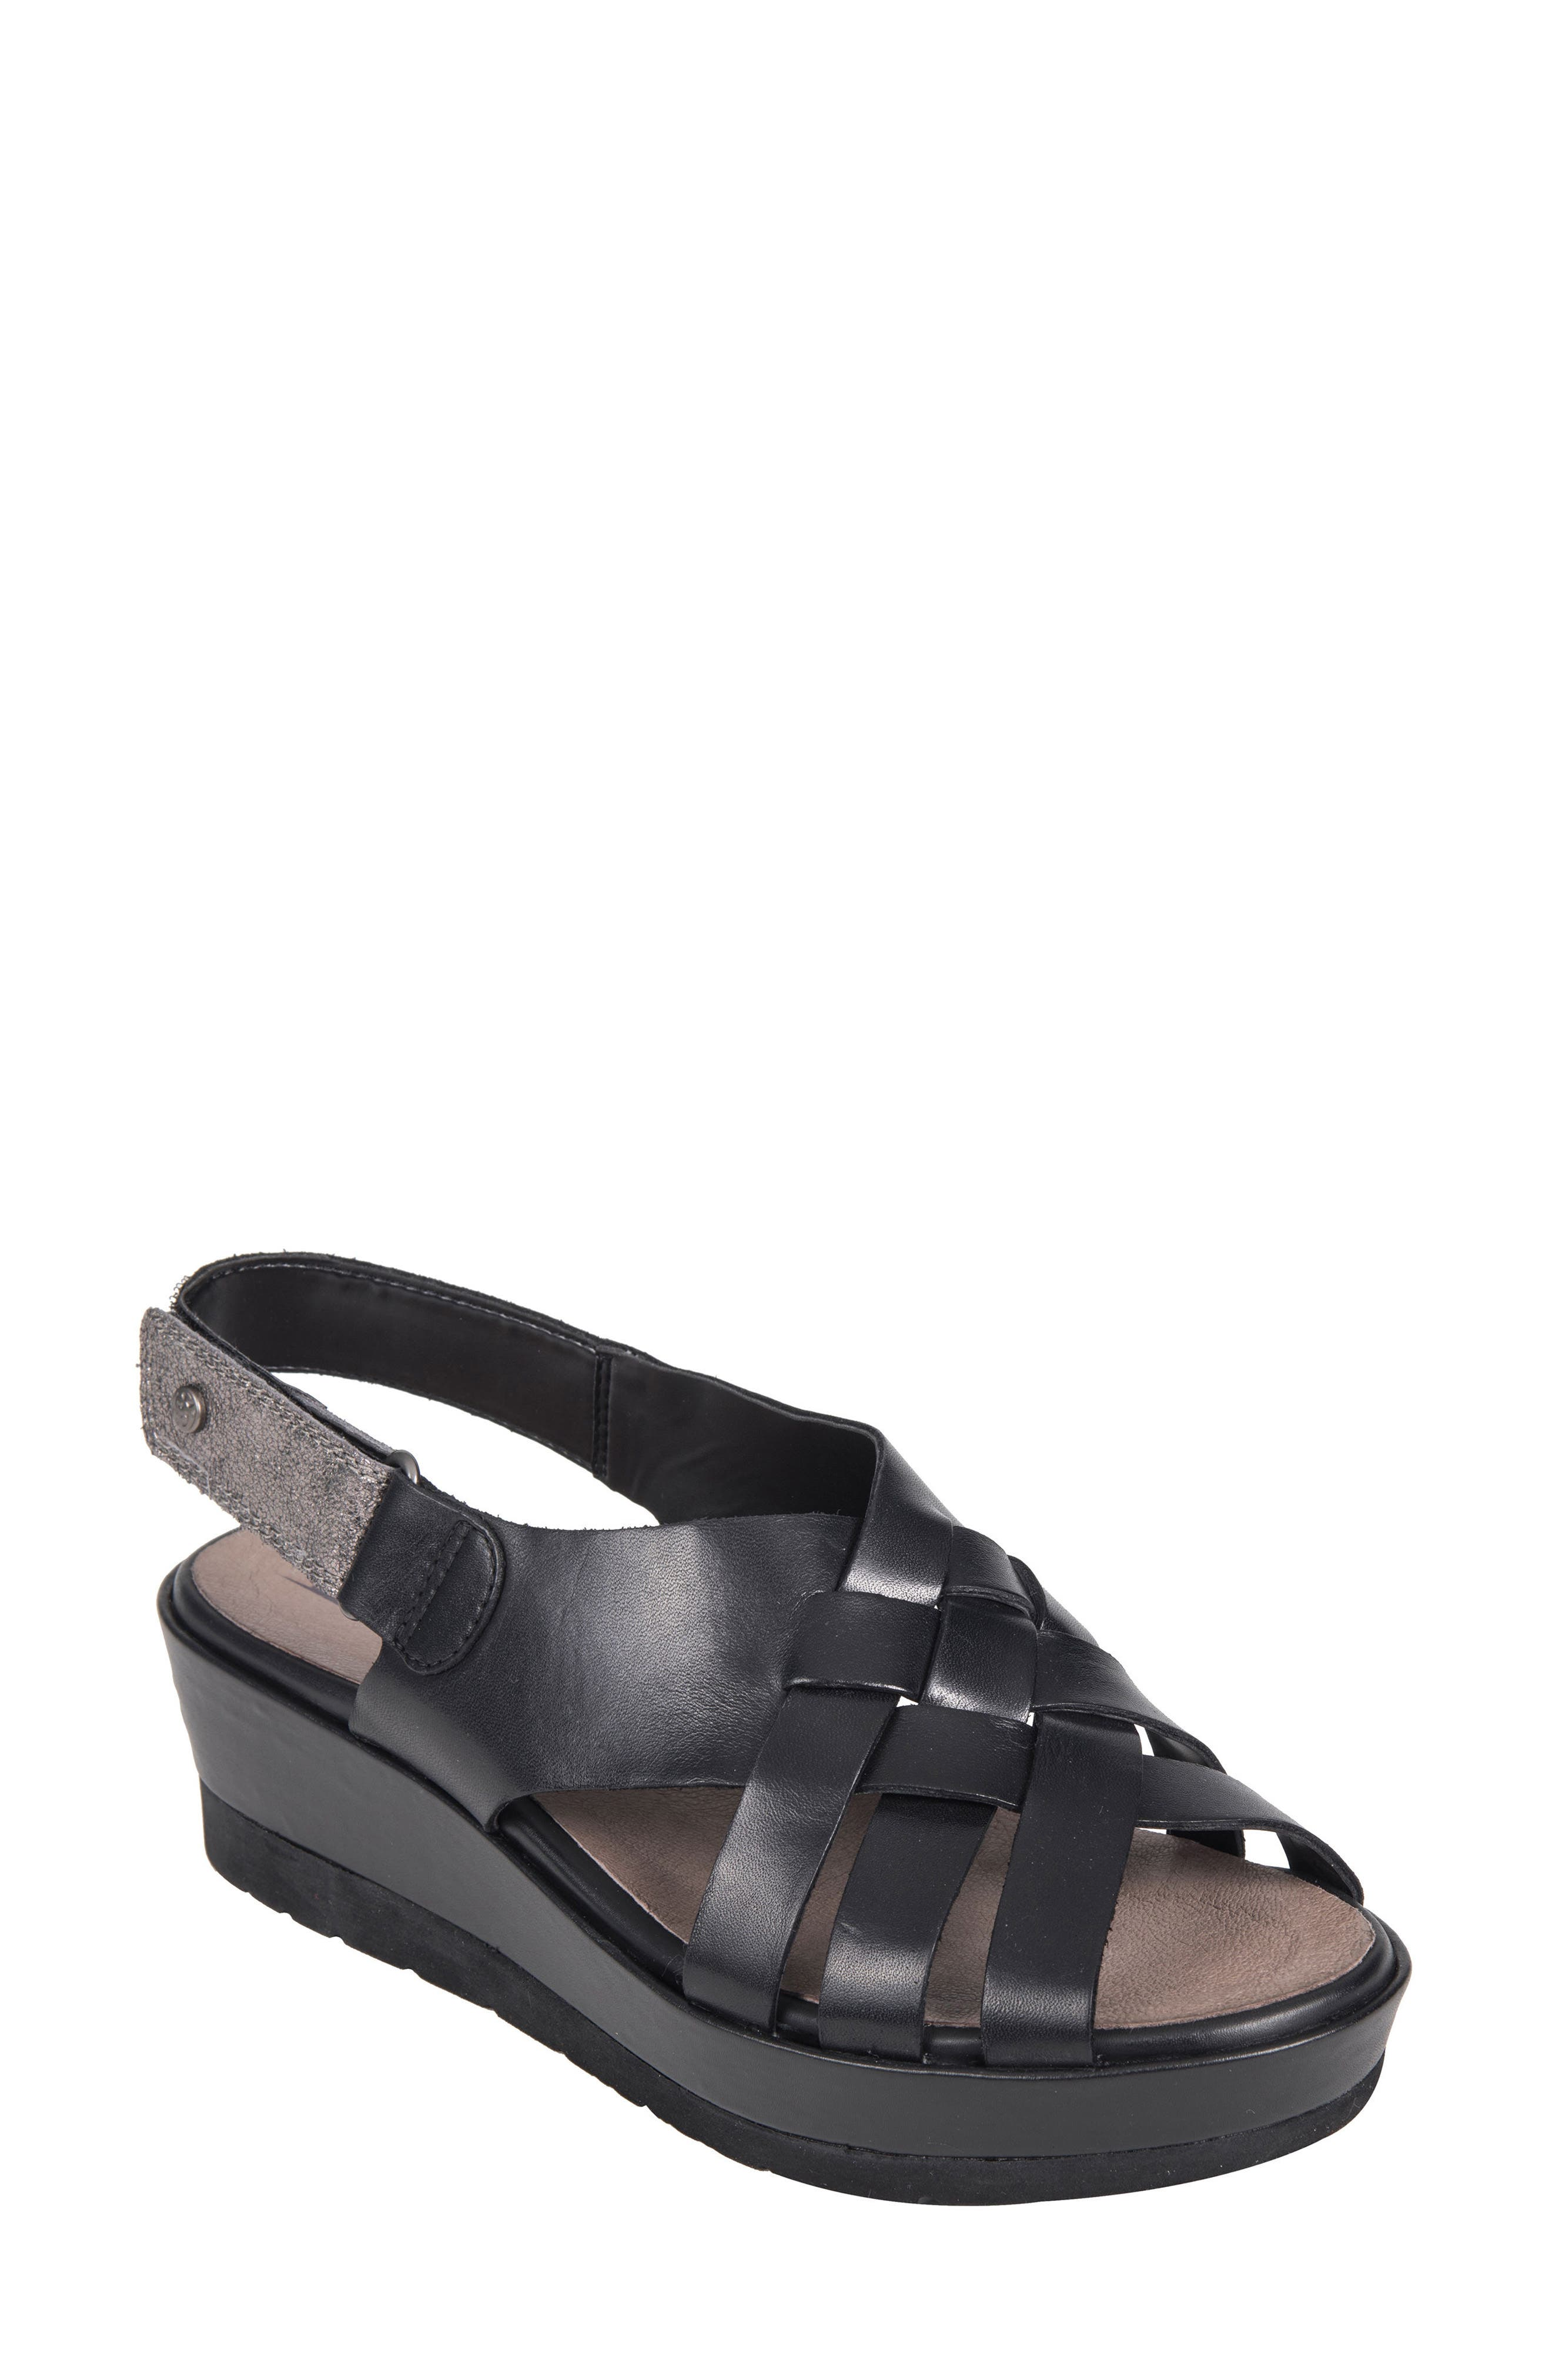 Sunflower Wedge Sandal,                             Main thumbnail 1, color,                             BLACK LEATHER